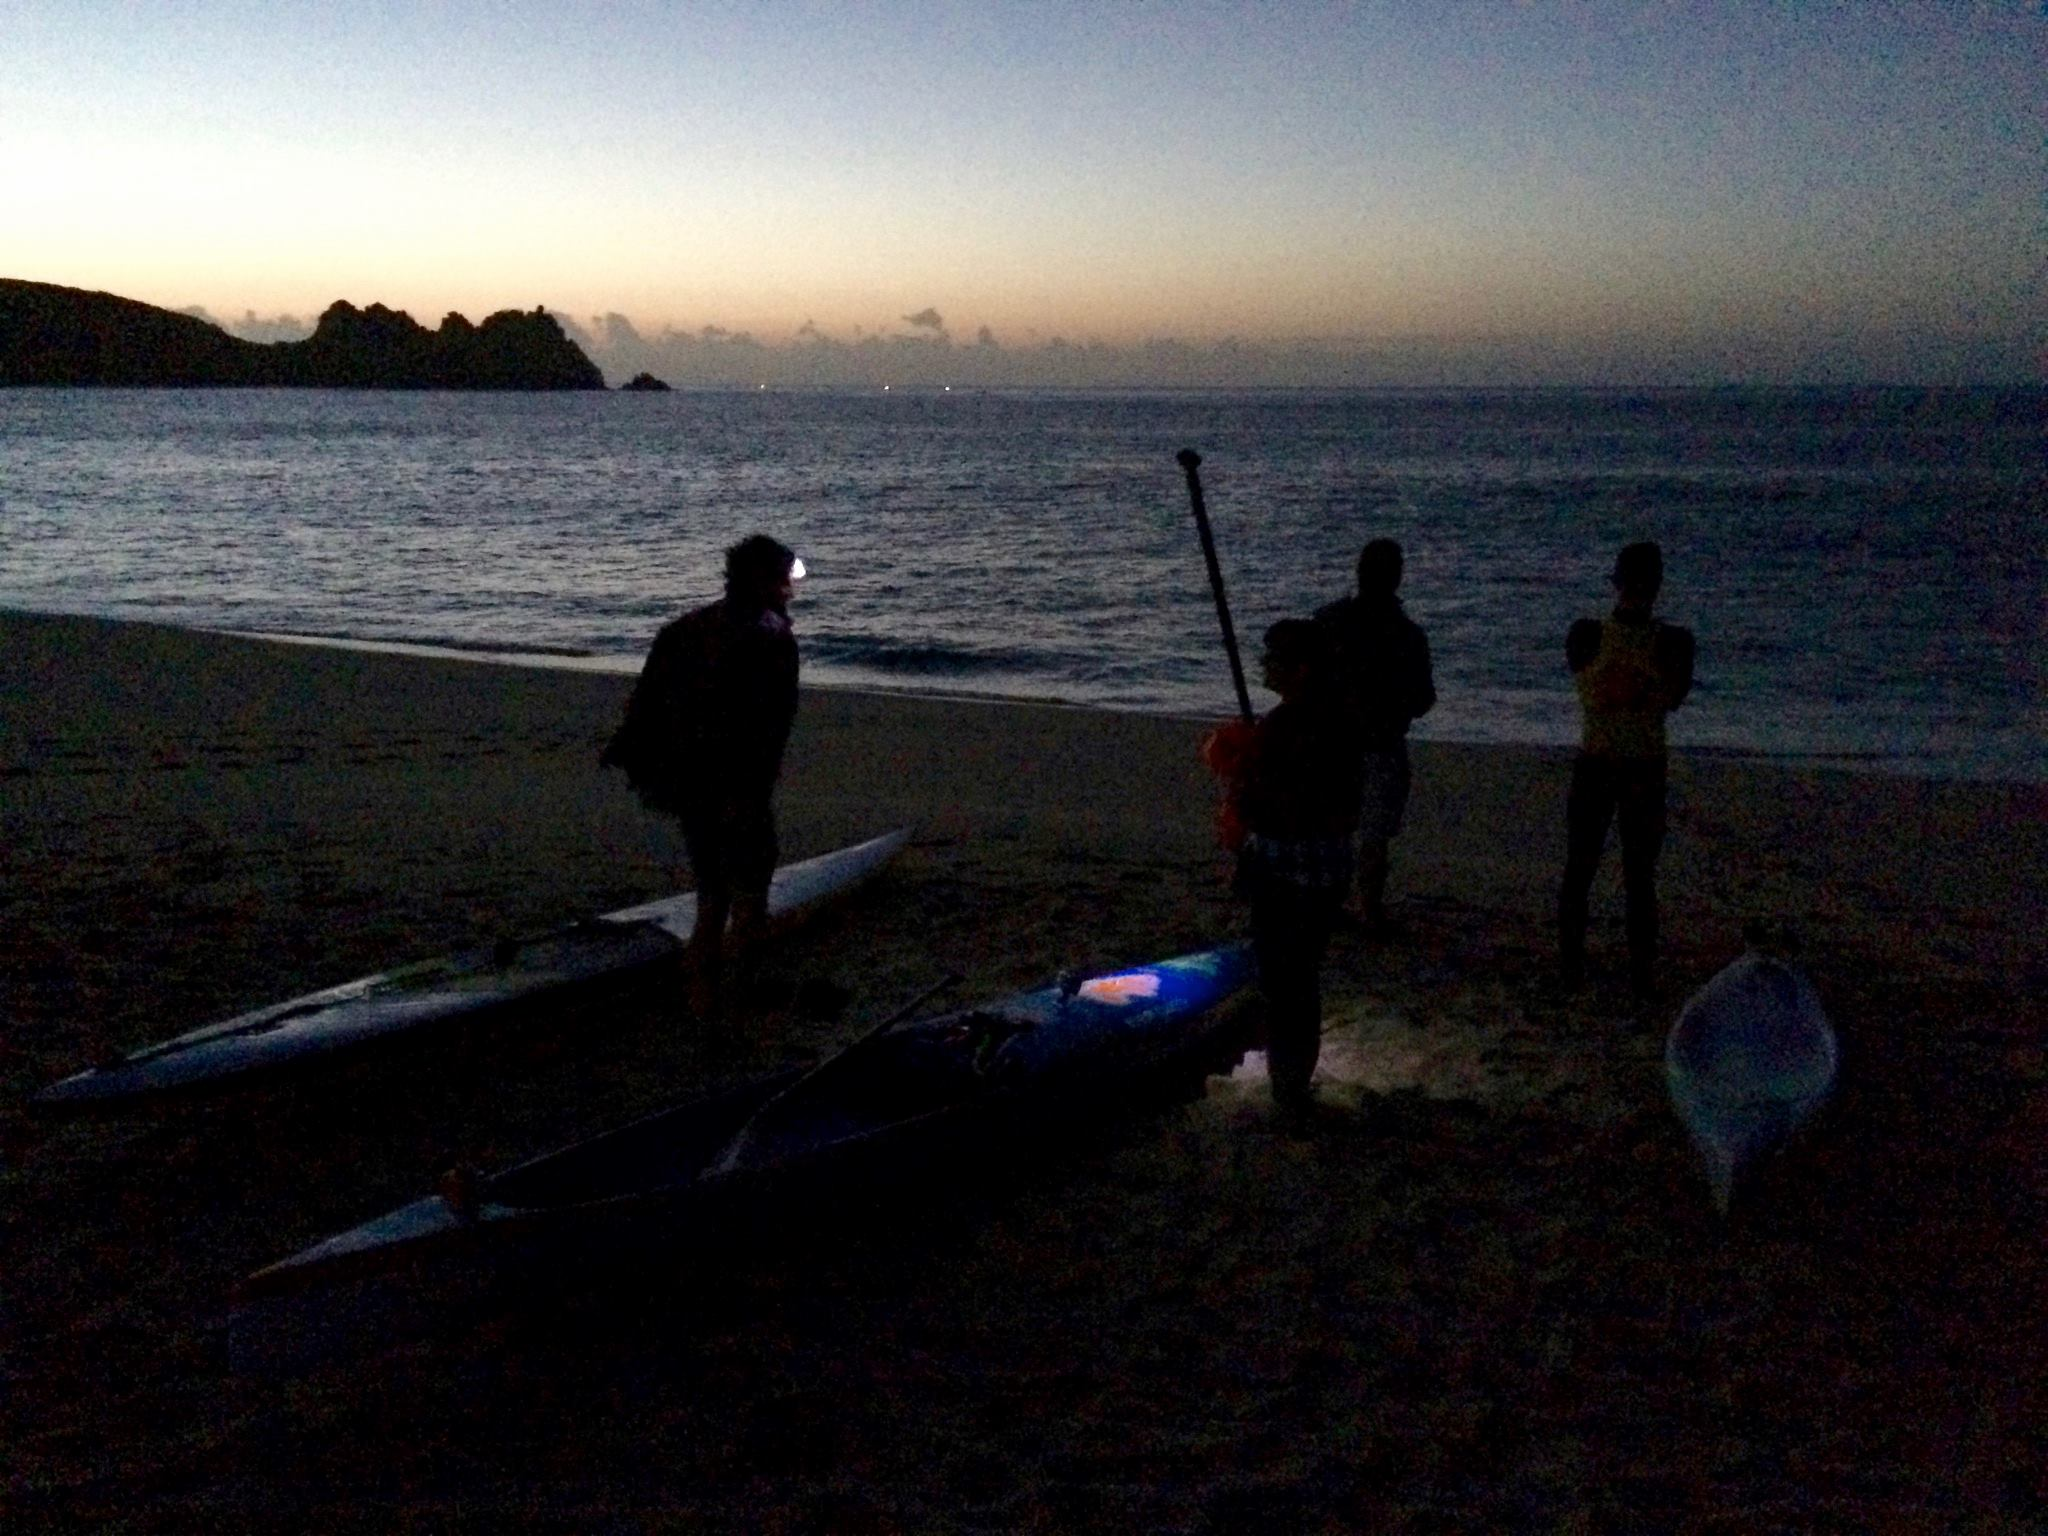 SUP boarders ready to go. Image Pierre Lopez